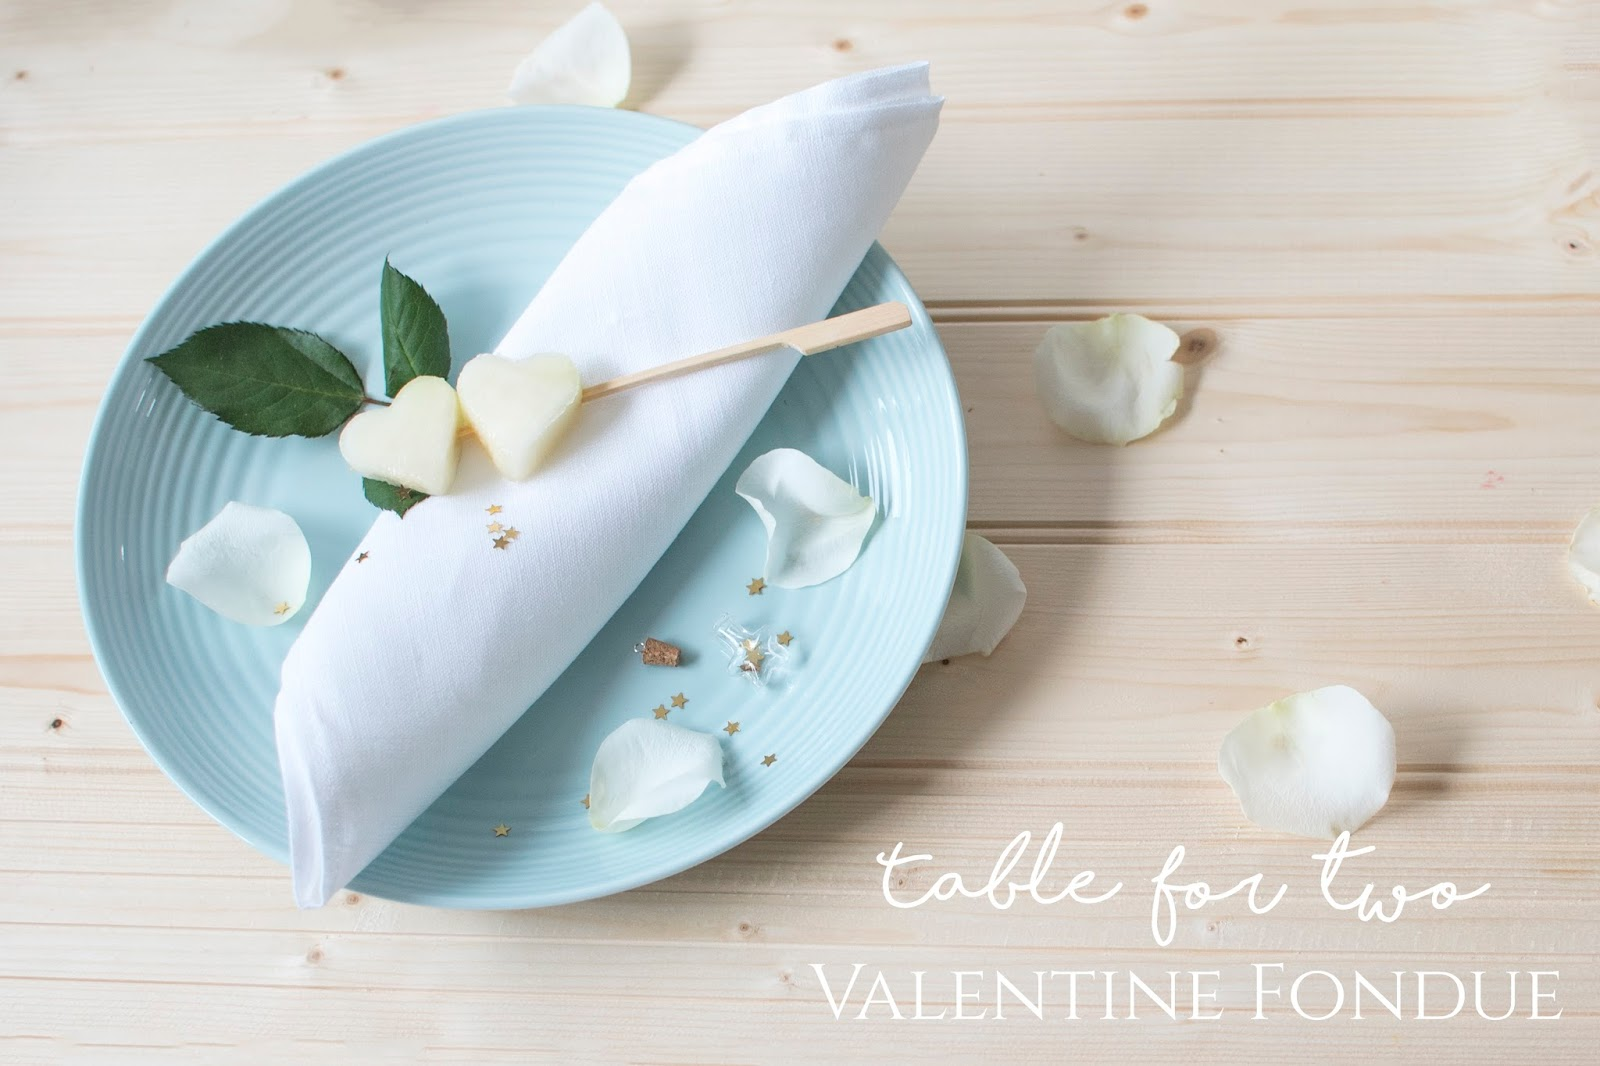 [A TABLE FOR TWO] VALENTINE FONDUE DATE NIGHT